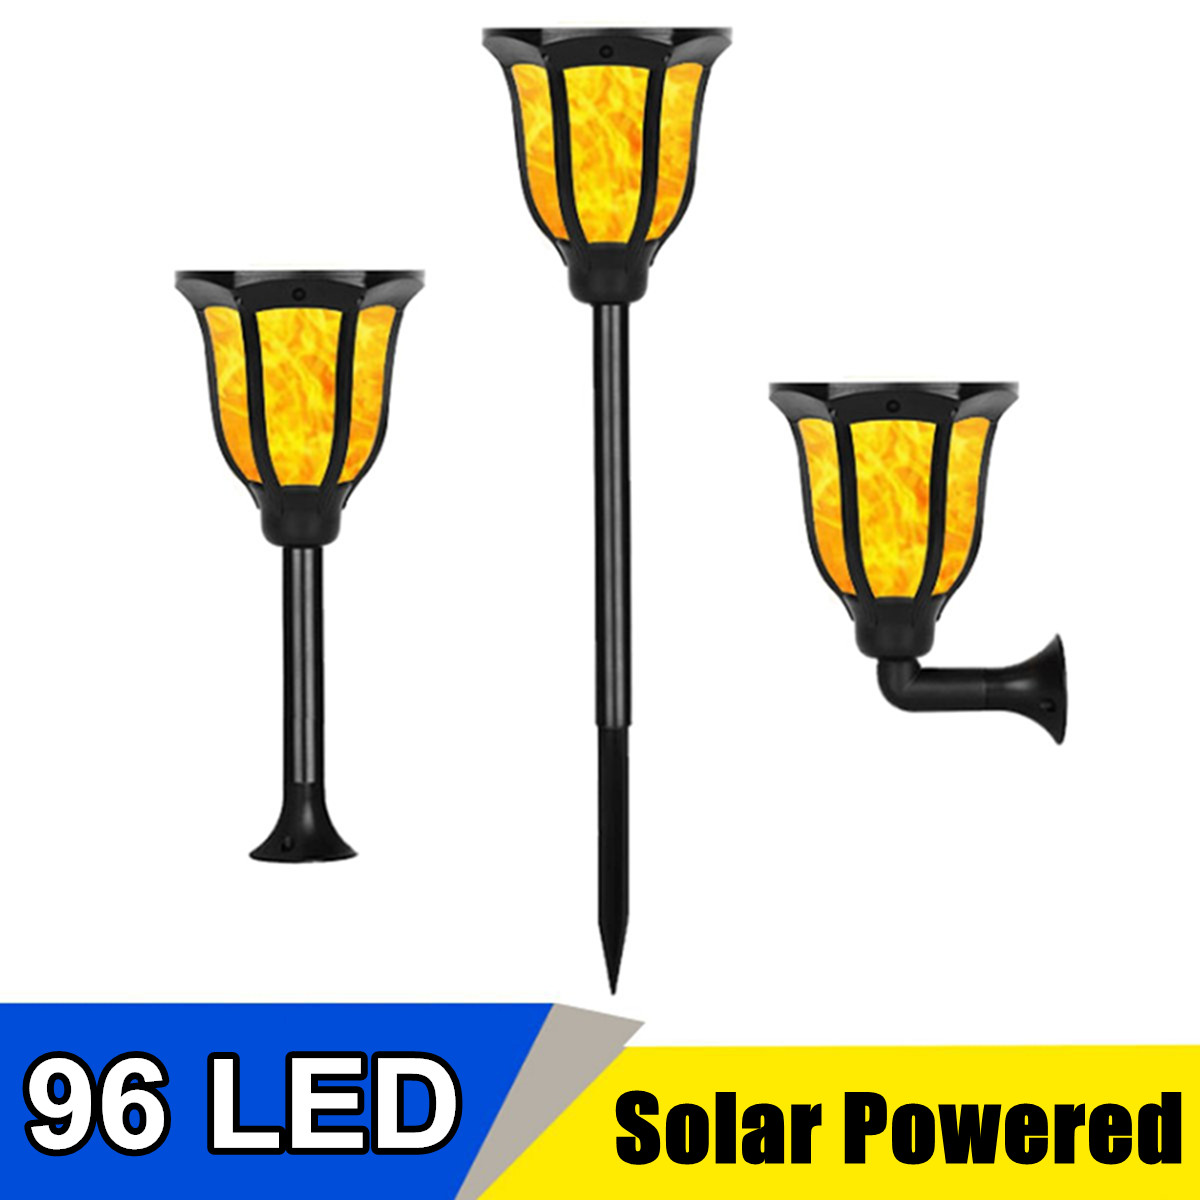 LEDs Solar LED Flame Lamp IP65 Waterproof Lawn Dancing Flicker Torch Lights Outdoor Garden Path Decoration Landscape Lights